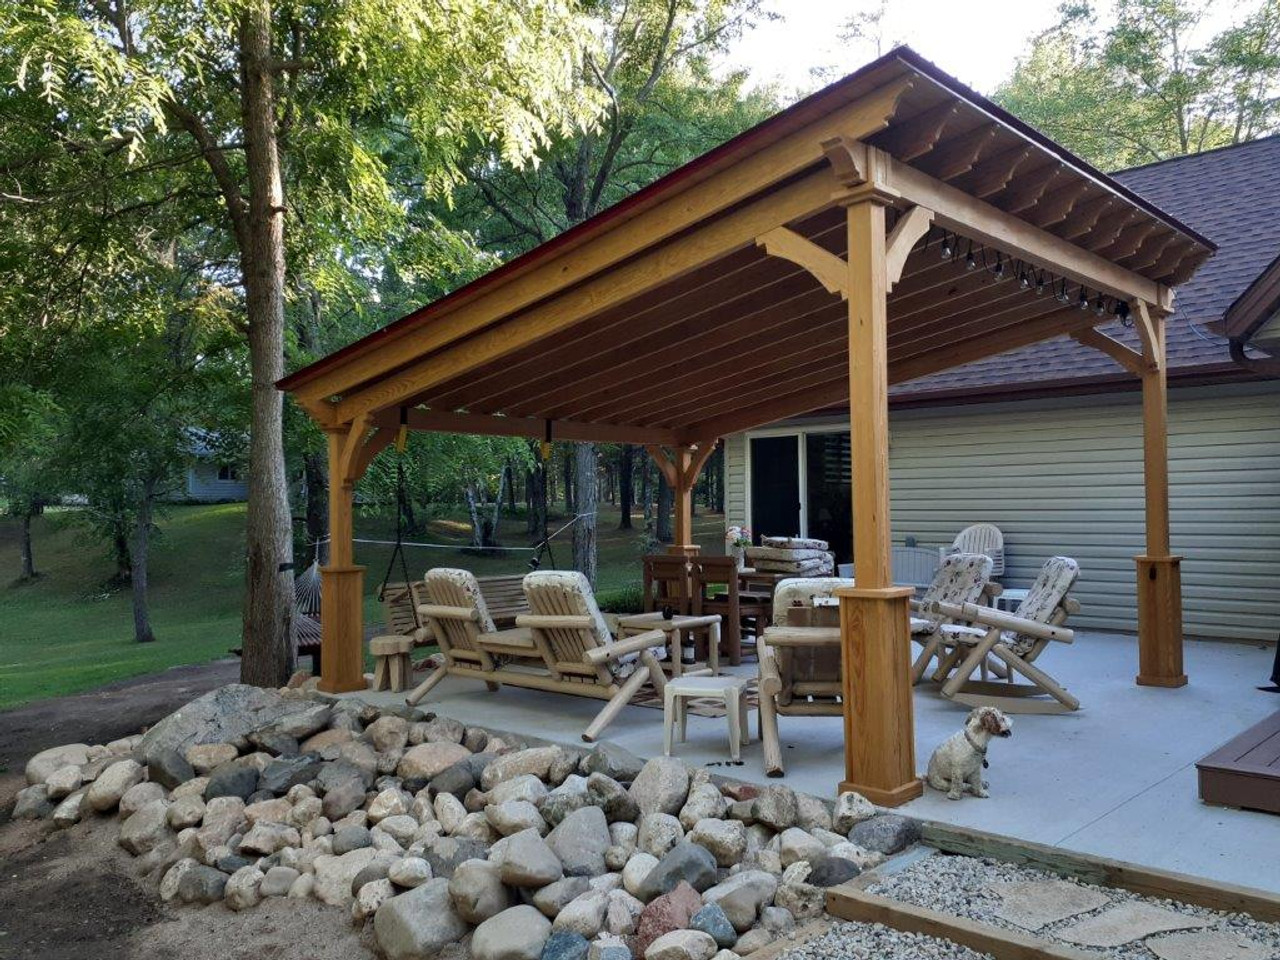 14x16 pressure treated covered Lean-To roof, Crivitz Wisconsin